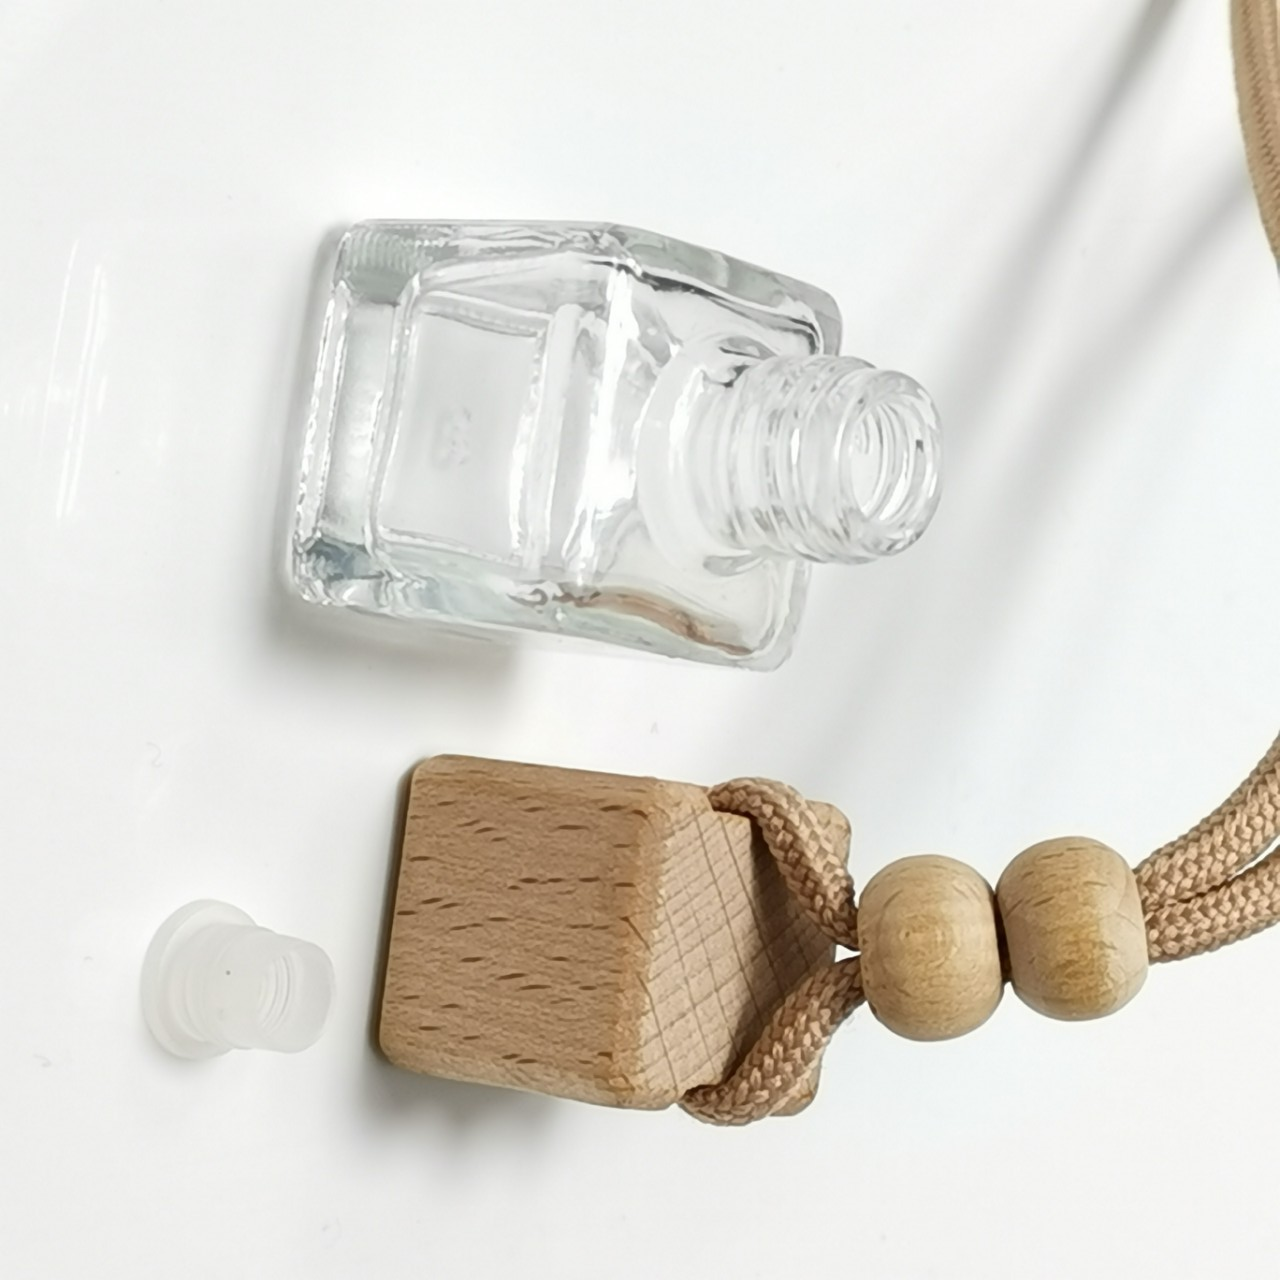 Hanging Car Perfume Bottle Diffuser Pendant Square Shape Empty Glass Bottle Air Freshener With Beech Wood Lid